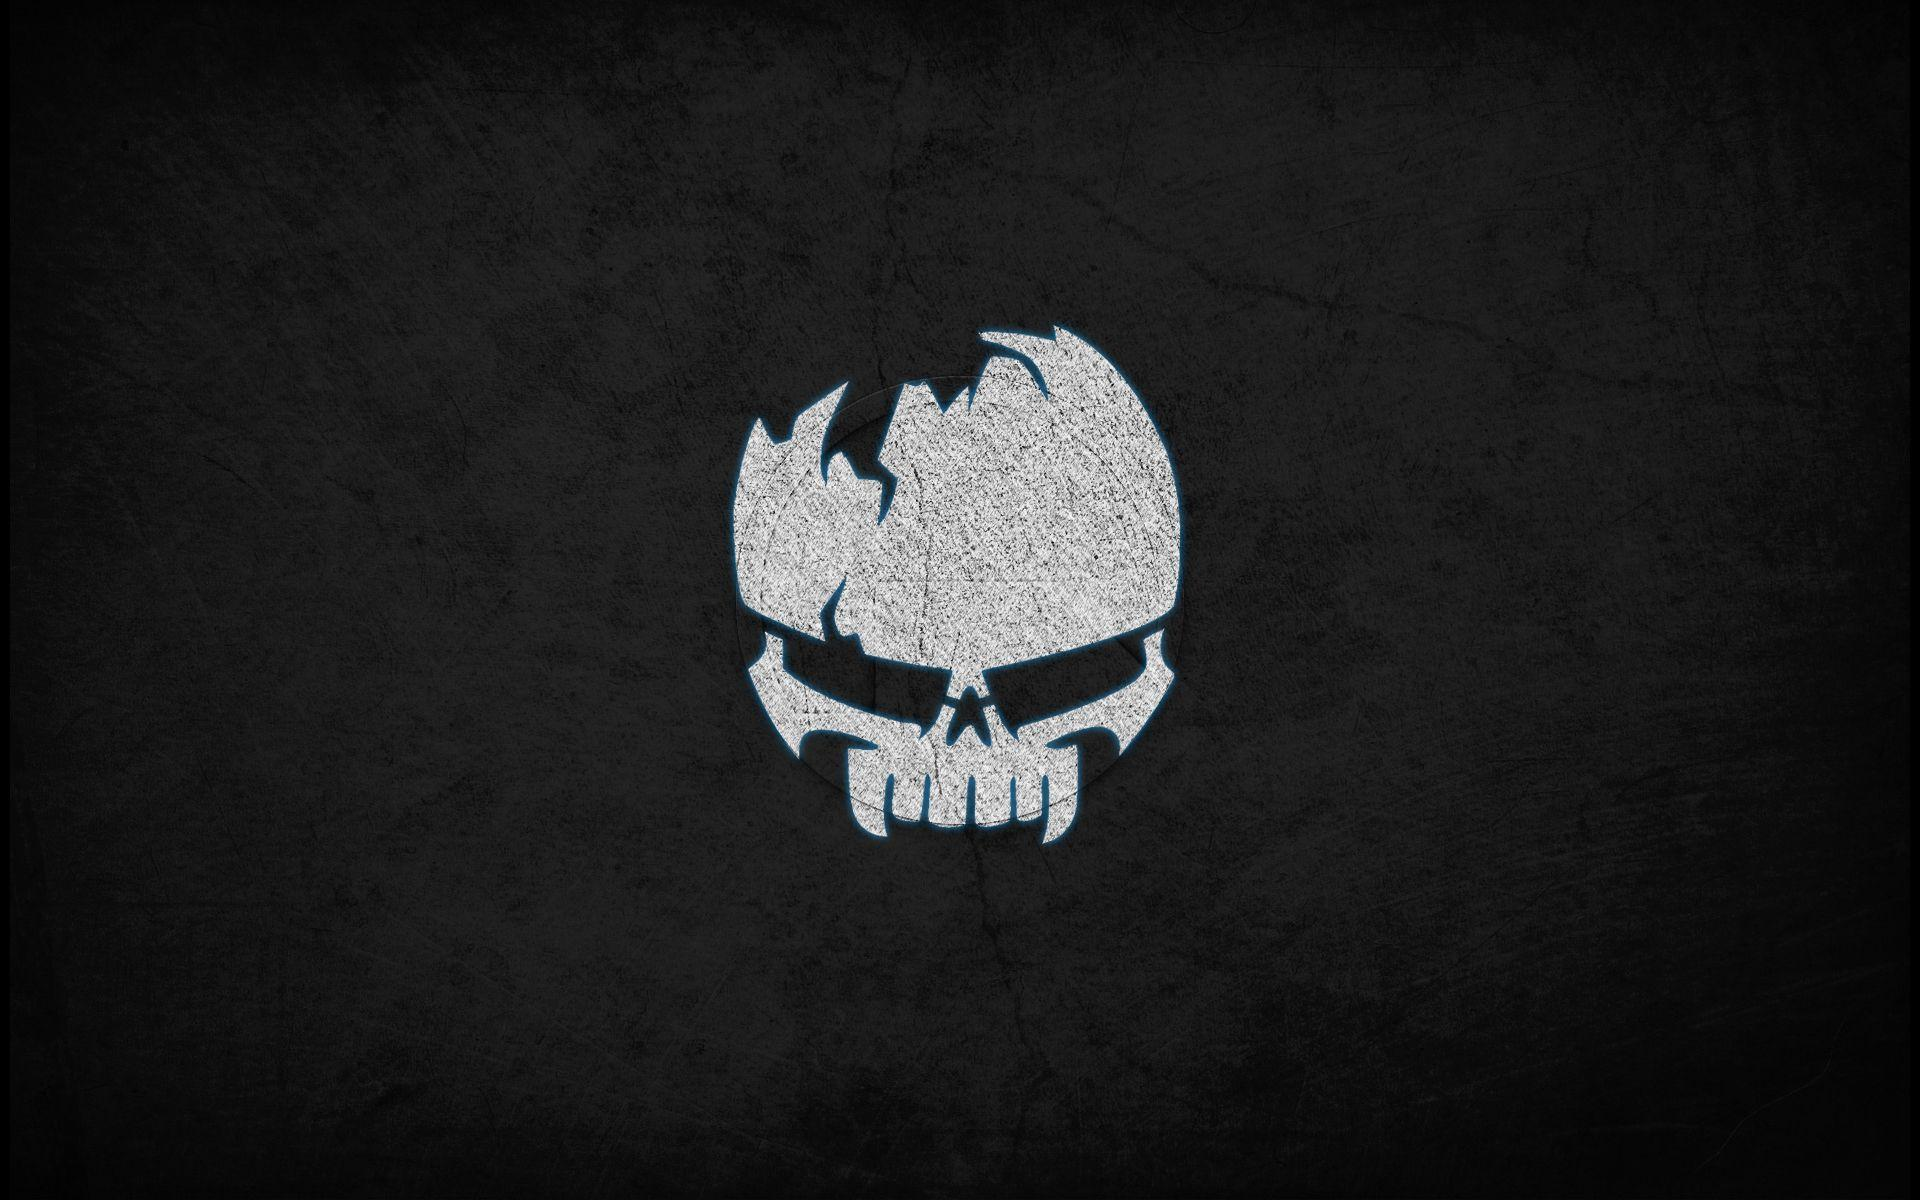 Gaming Logo Wallpapers Wallpaper Cave